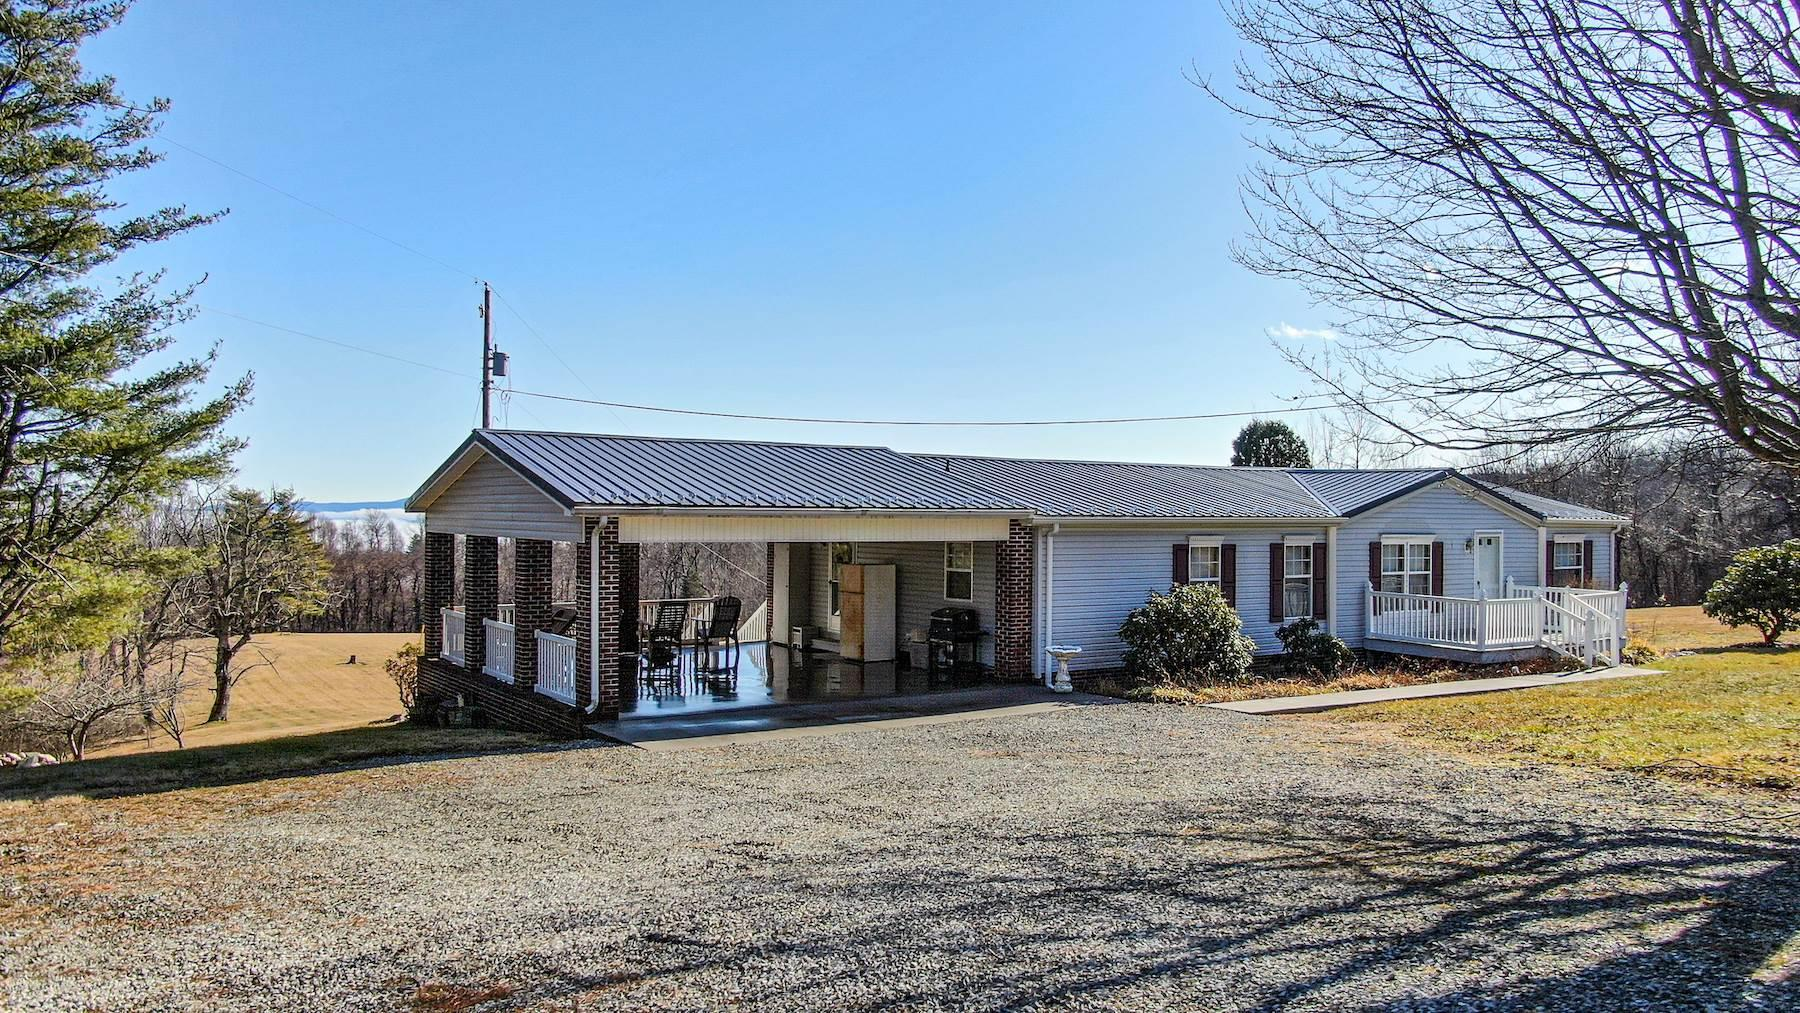 Well maintained home for sale in Floyd VA! This Fleetwood mobile home features 3 bedrooms, 2 baths and a spacious open floor plan. The home has a gorgeous stone fireplace with gas logs. The large master bedroom has plenty of space and has its own master bath with a large bathtub, shower and his & hers sinks. There are two other bedrooms on the other end of the home along with another full bath. Check out the amazing view from the sitting area. Access the back deck from the sliding glass doors. This is an excellent area to kick back after a long day. The kitchen is very clean and has been well kept and has a nice sized pantry for storage. This beautiful home is settled on over 13 acres of land with a huge field and mountain views! Make an appointment to check out this property today!